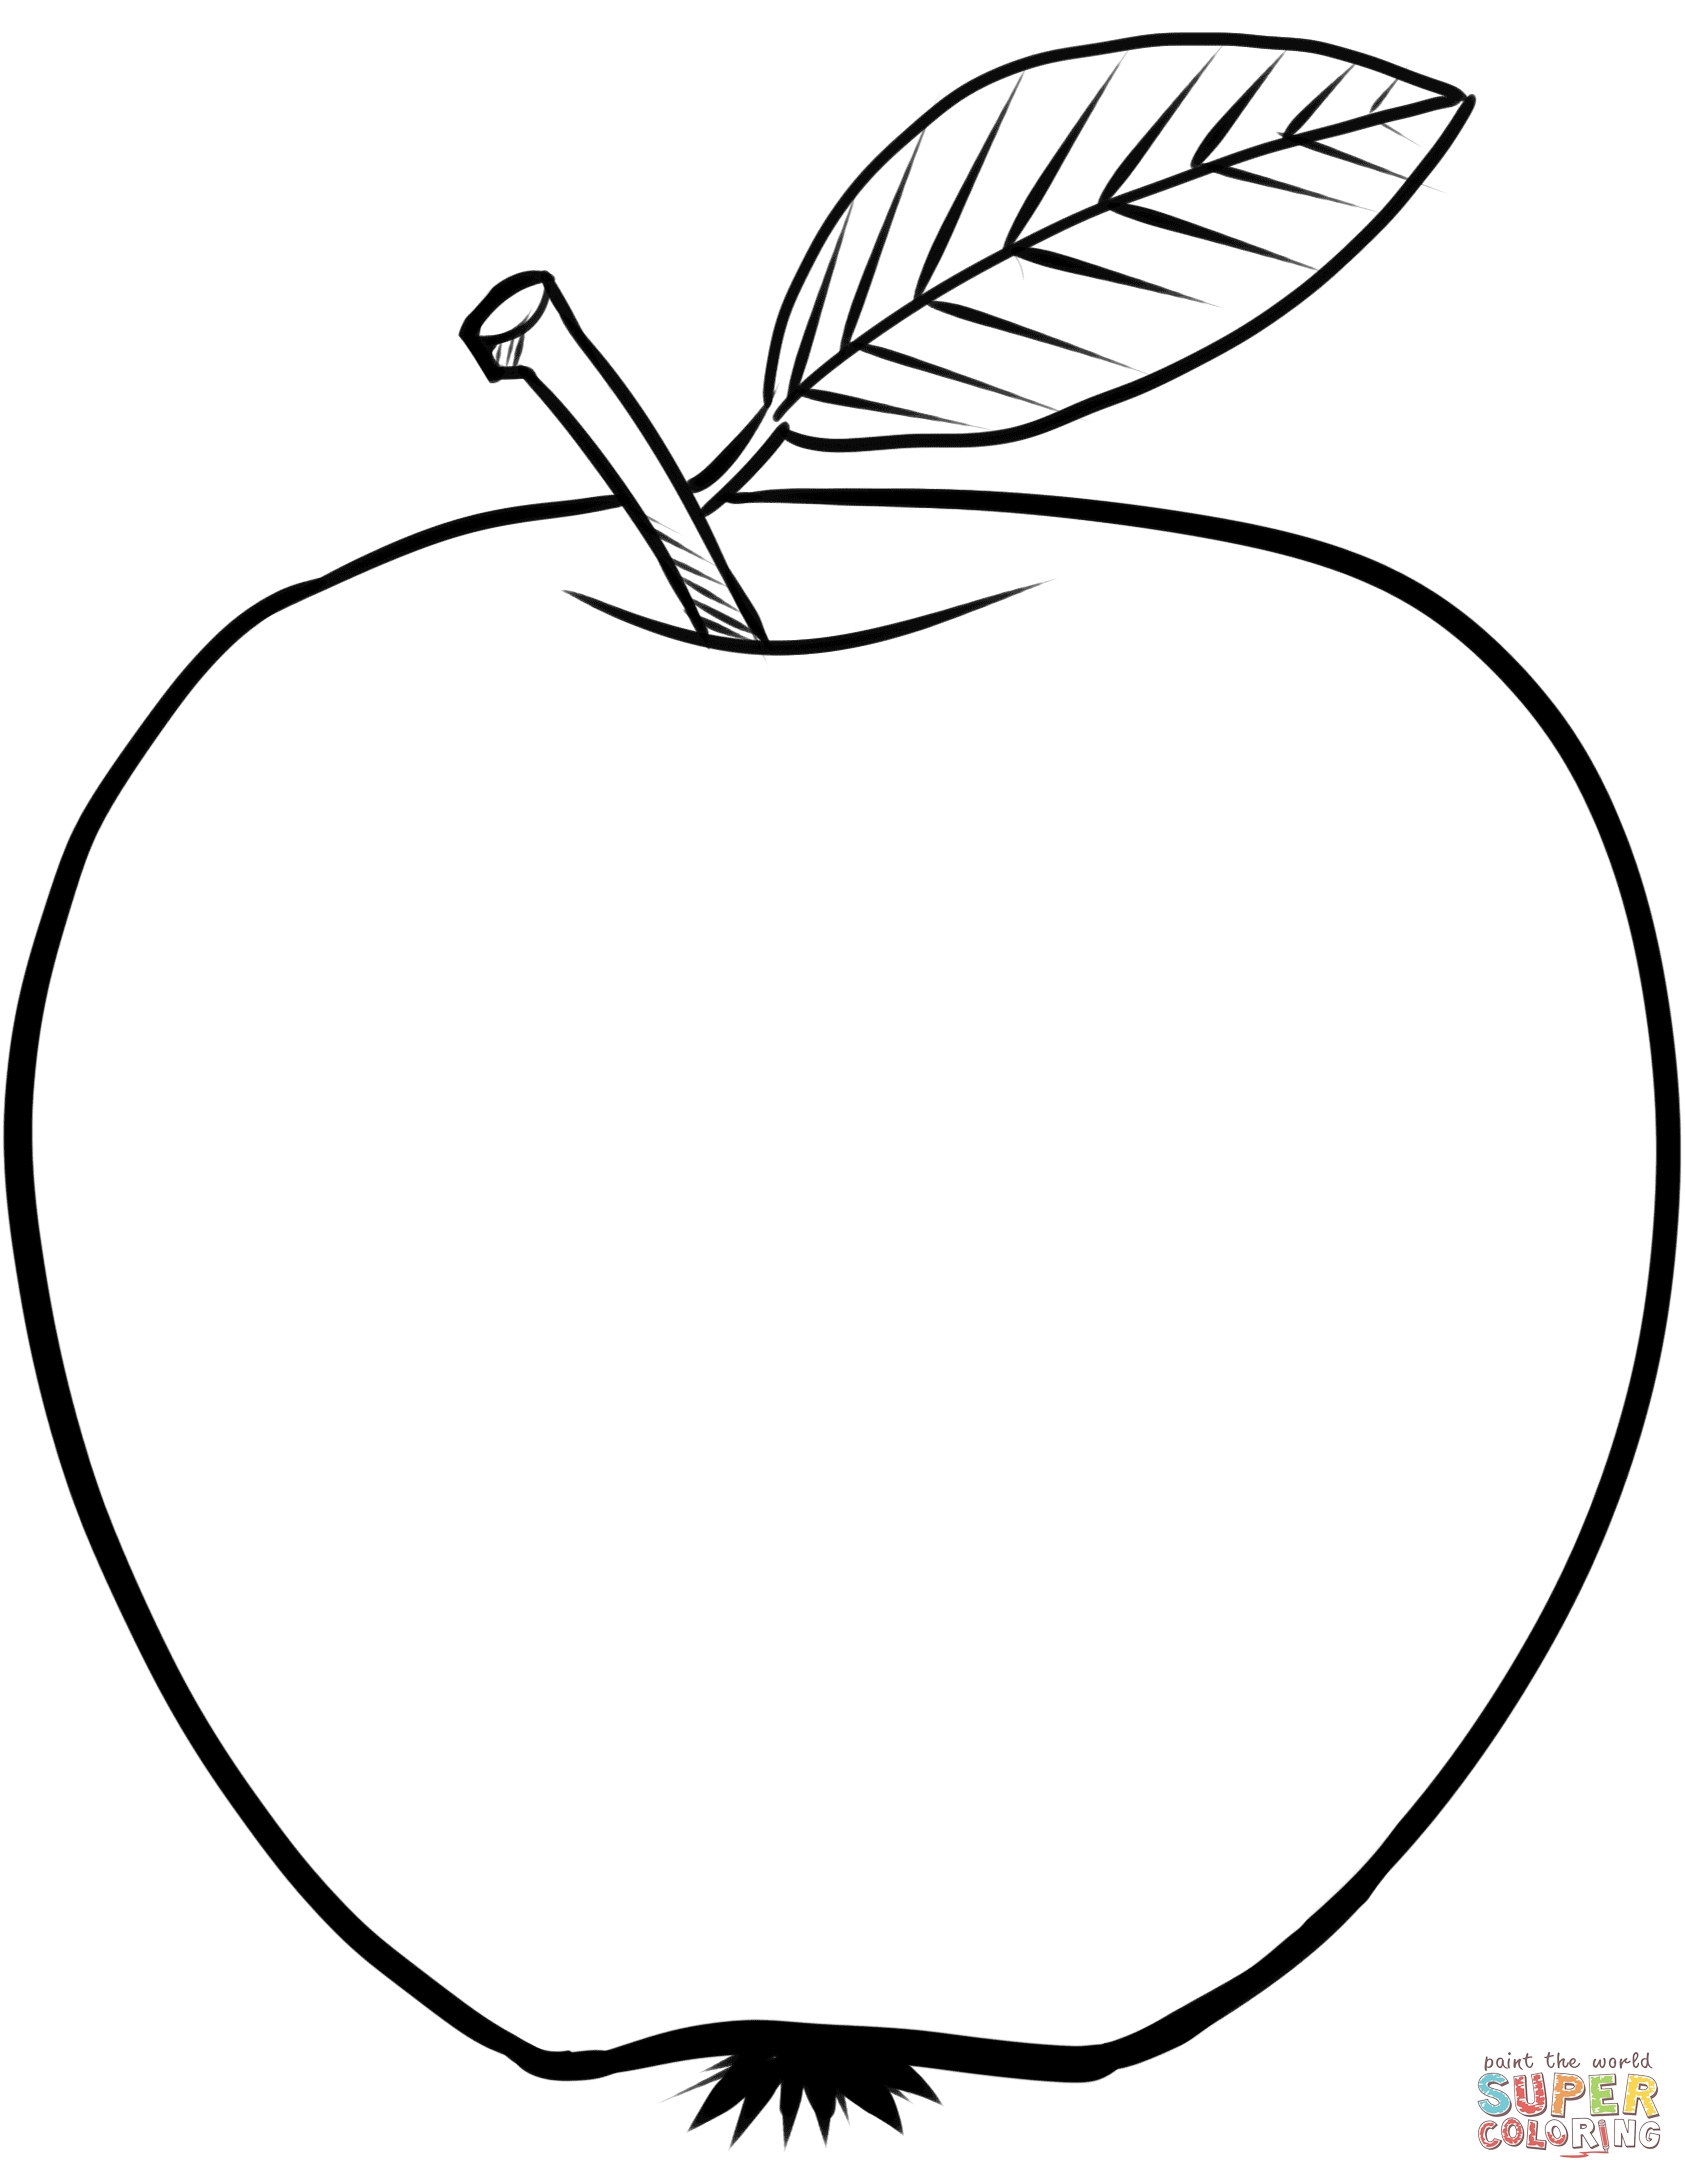 apple coloring pages - apple 2